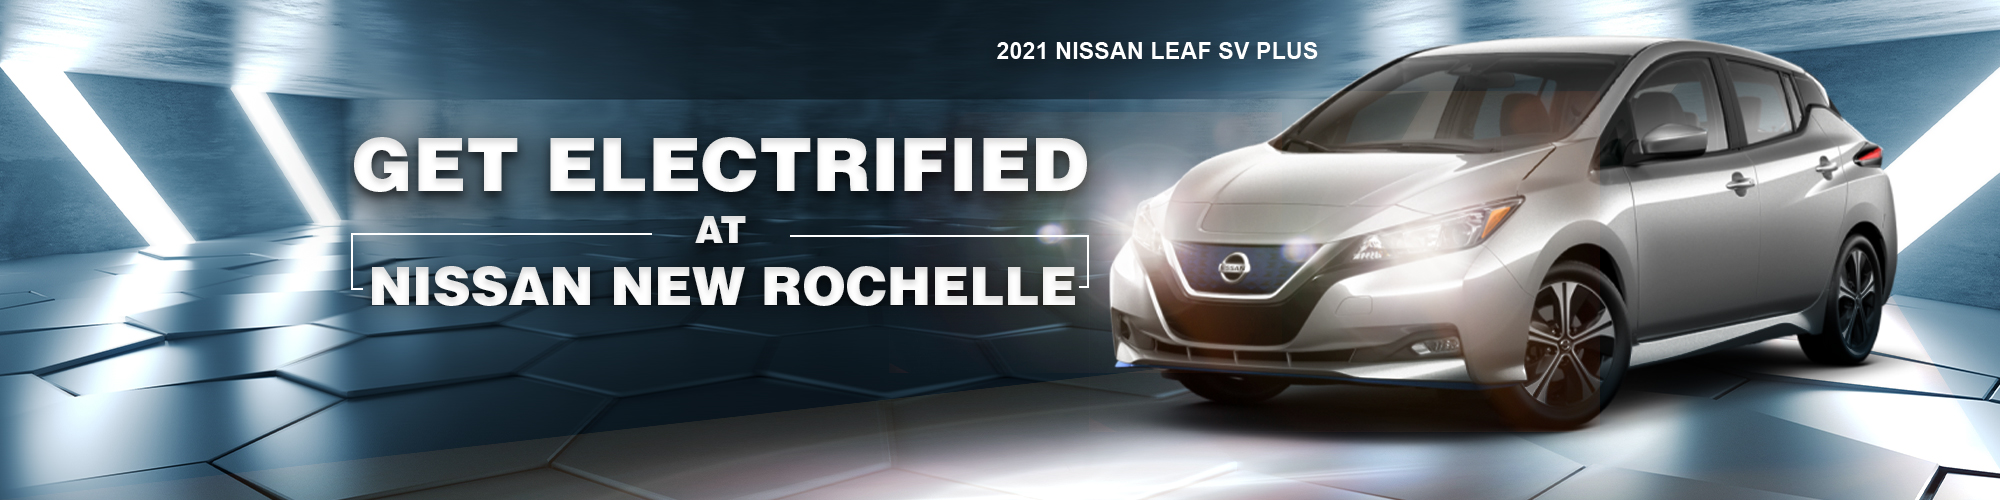 Nissan New Rochelle Leaf